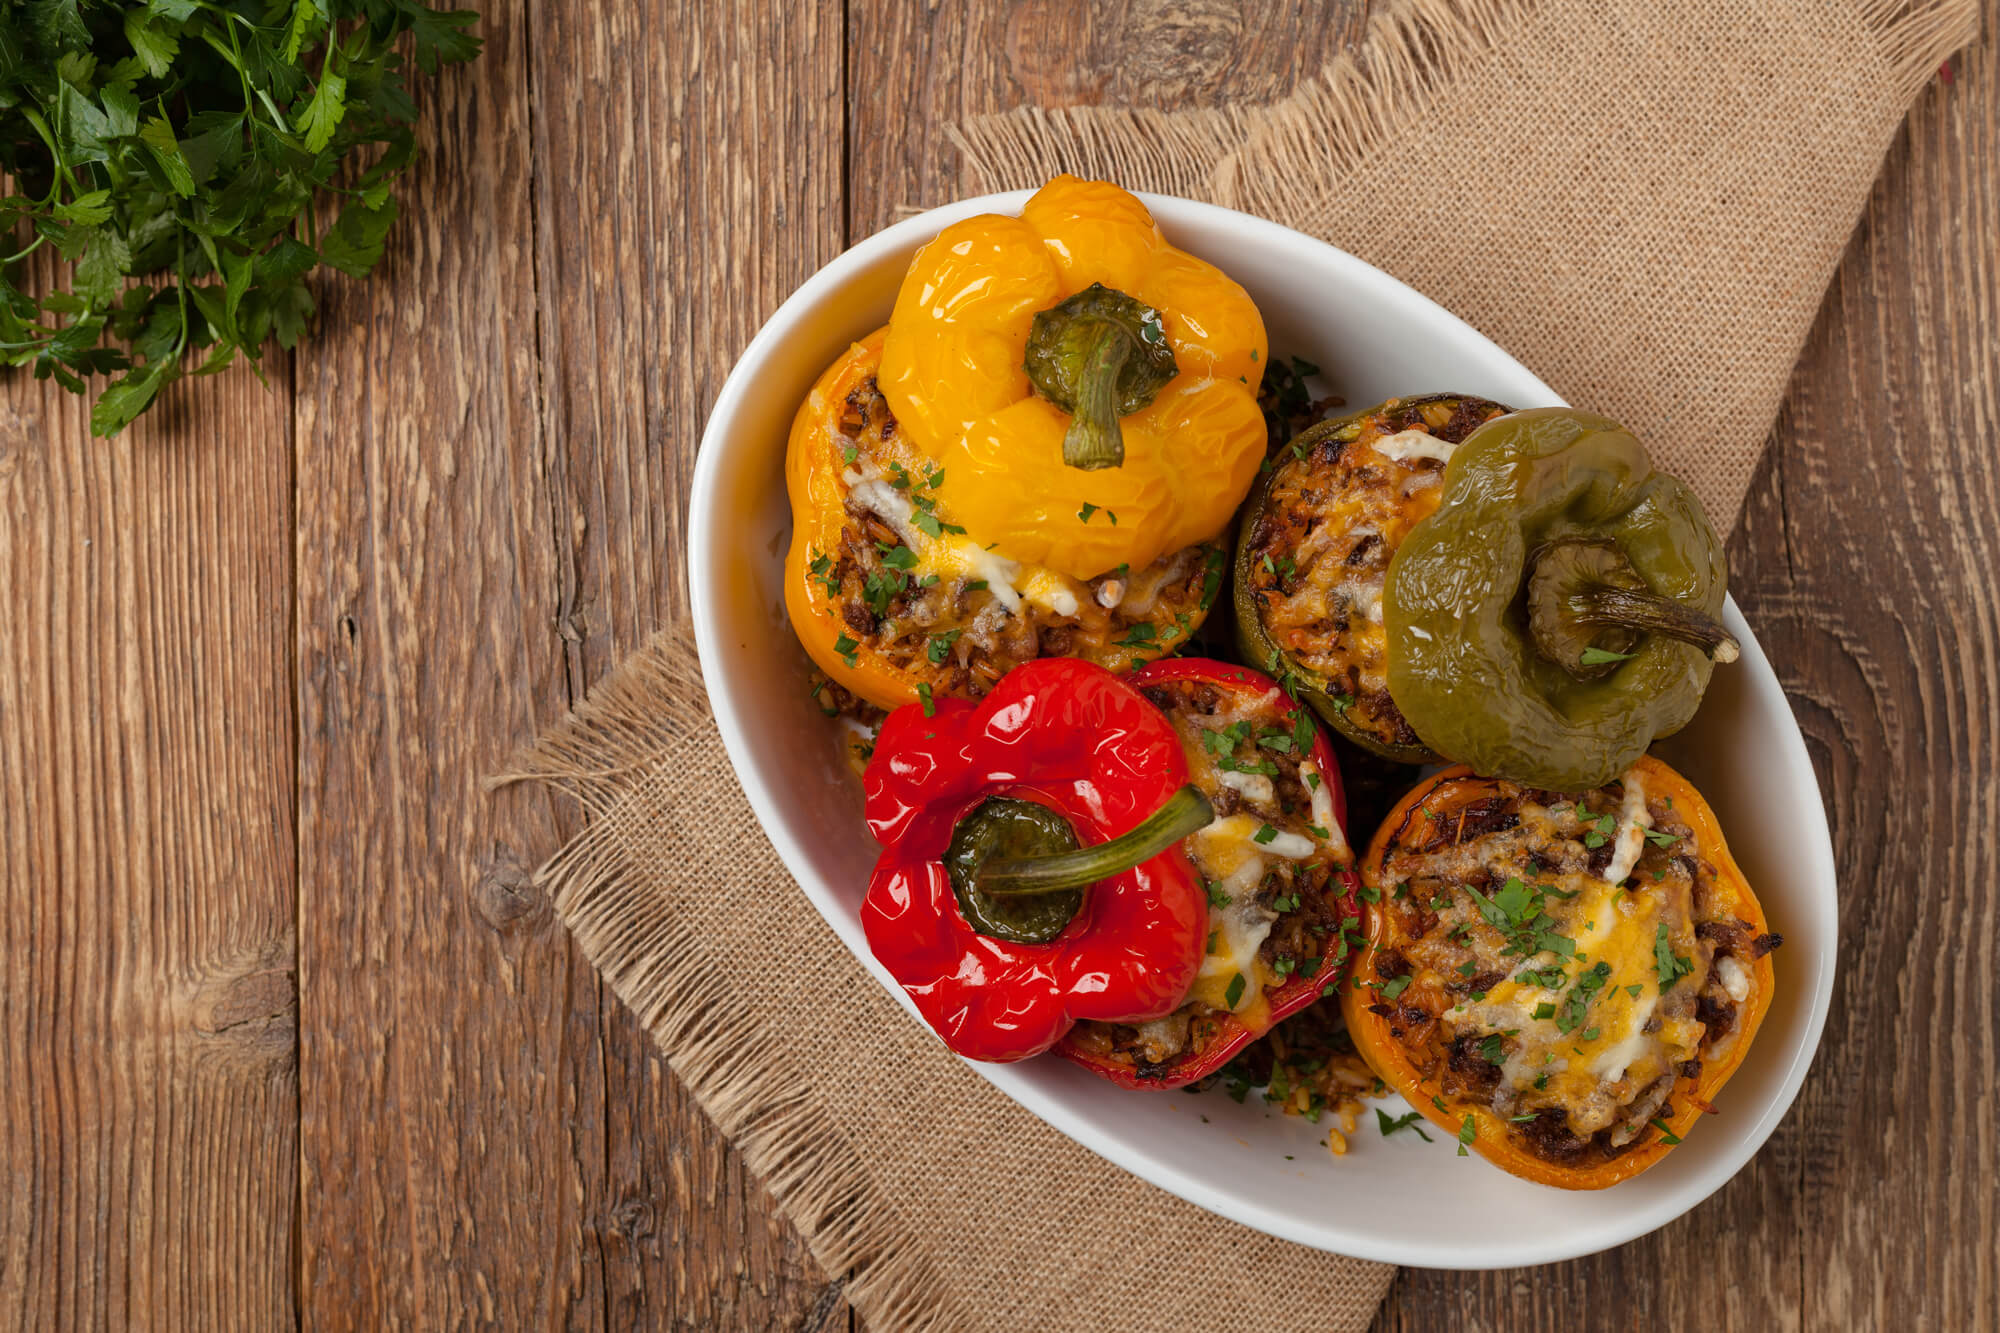 Sizzle's Classic Stuffed Peppers